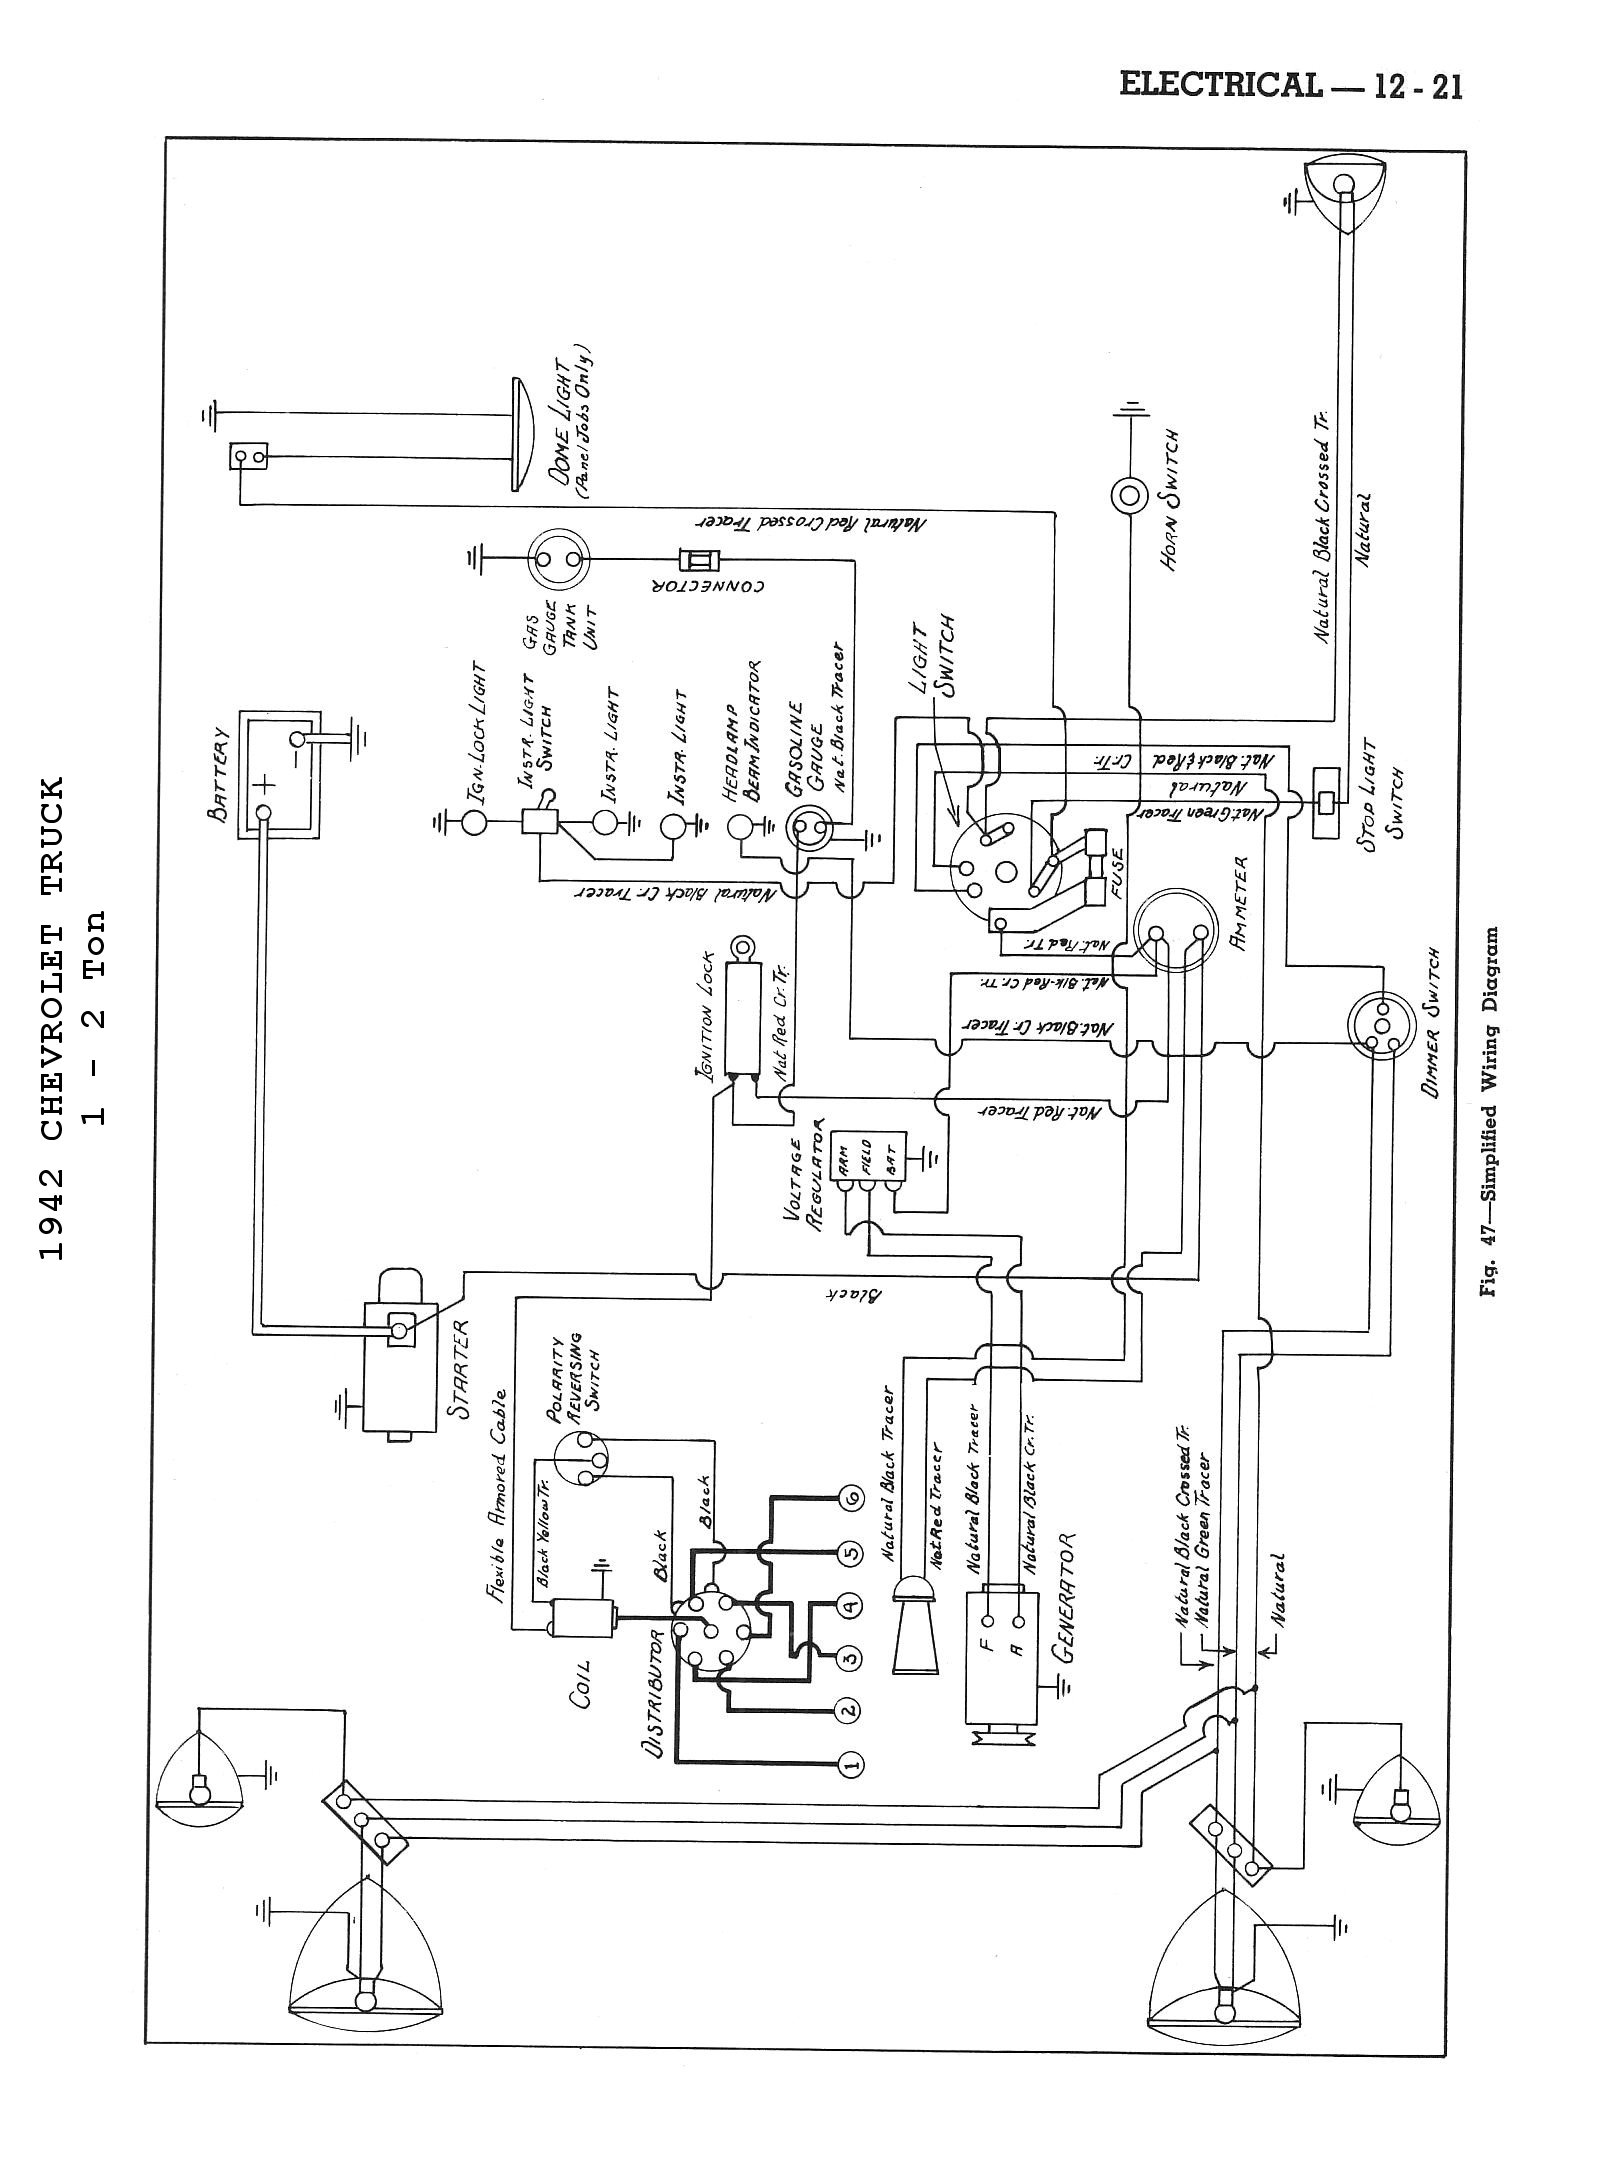 42cm4x2t1221 chevy wiring diagrams 57 chevy truck wiring harness at mifinder.co